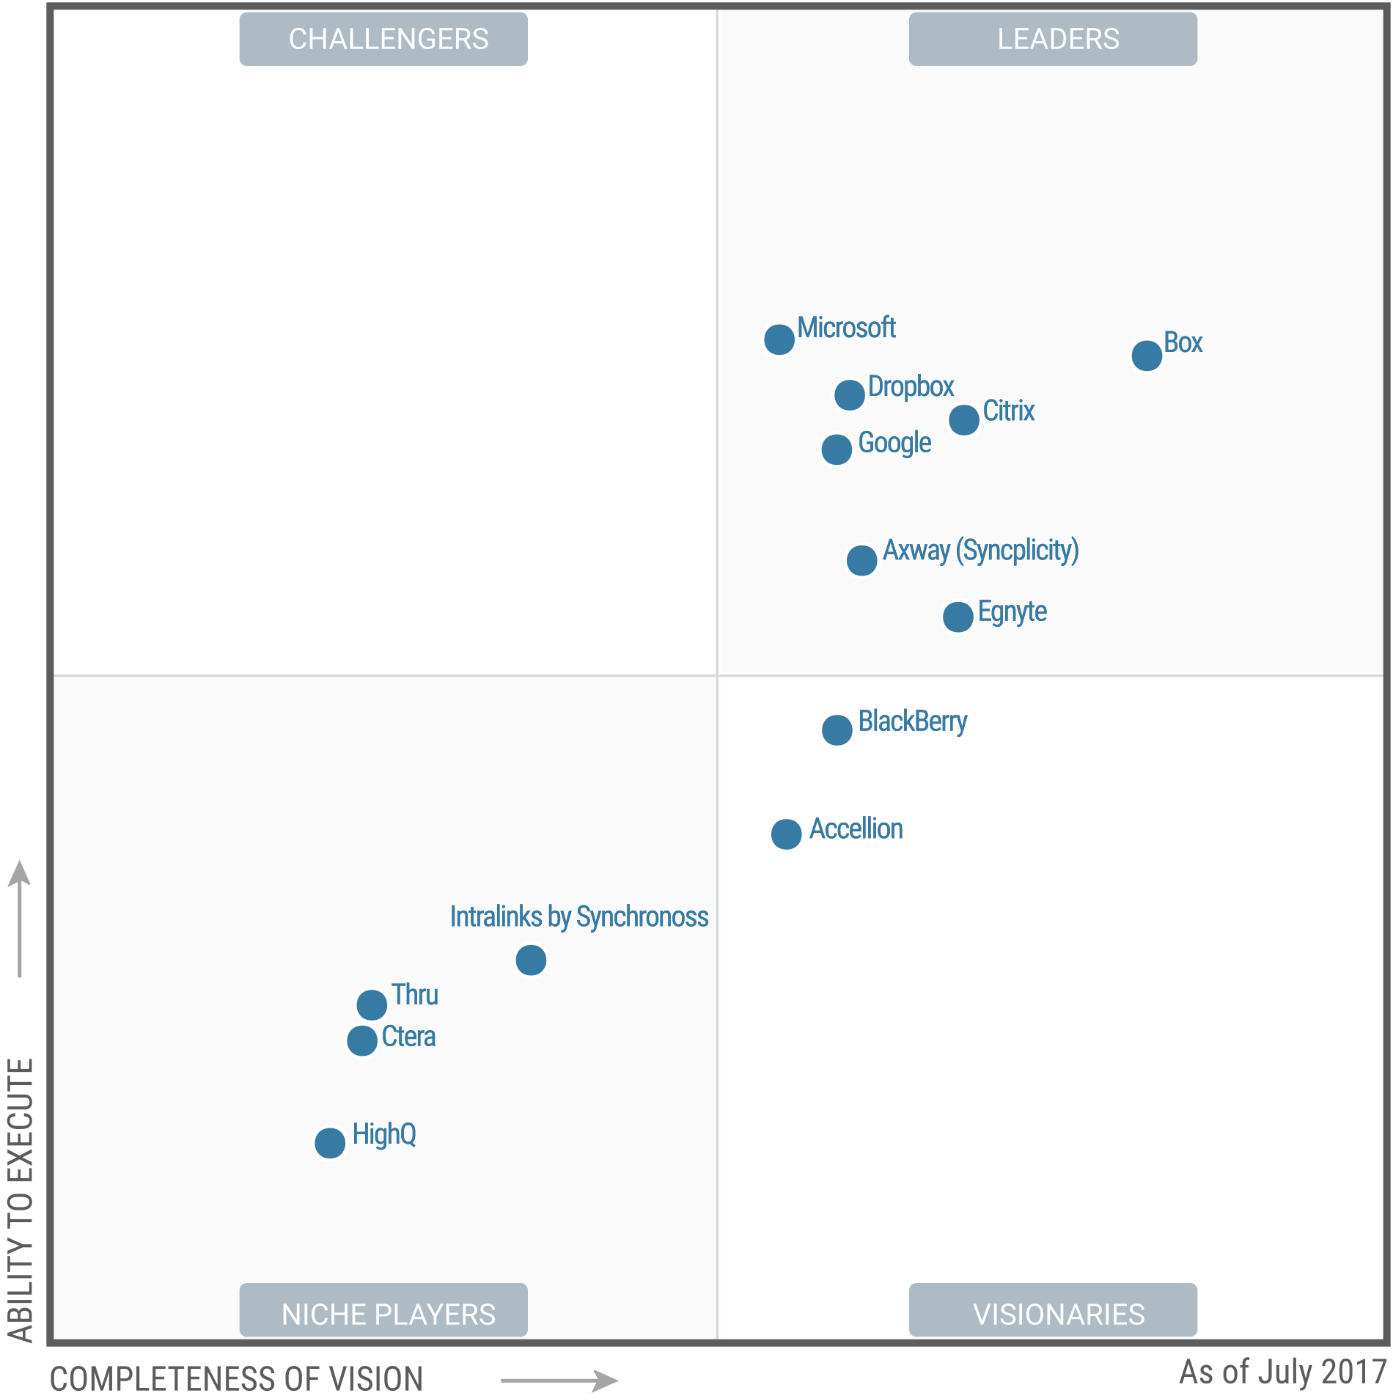 Magic Quadrant for Content Collaboration Platforms 2017 (G00314654)